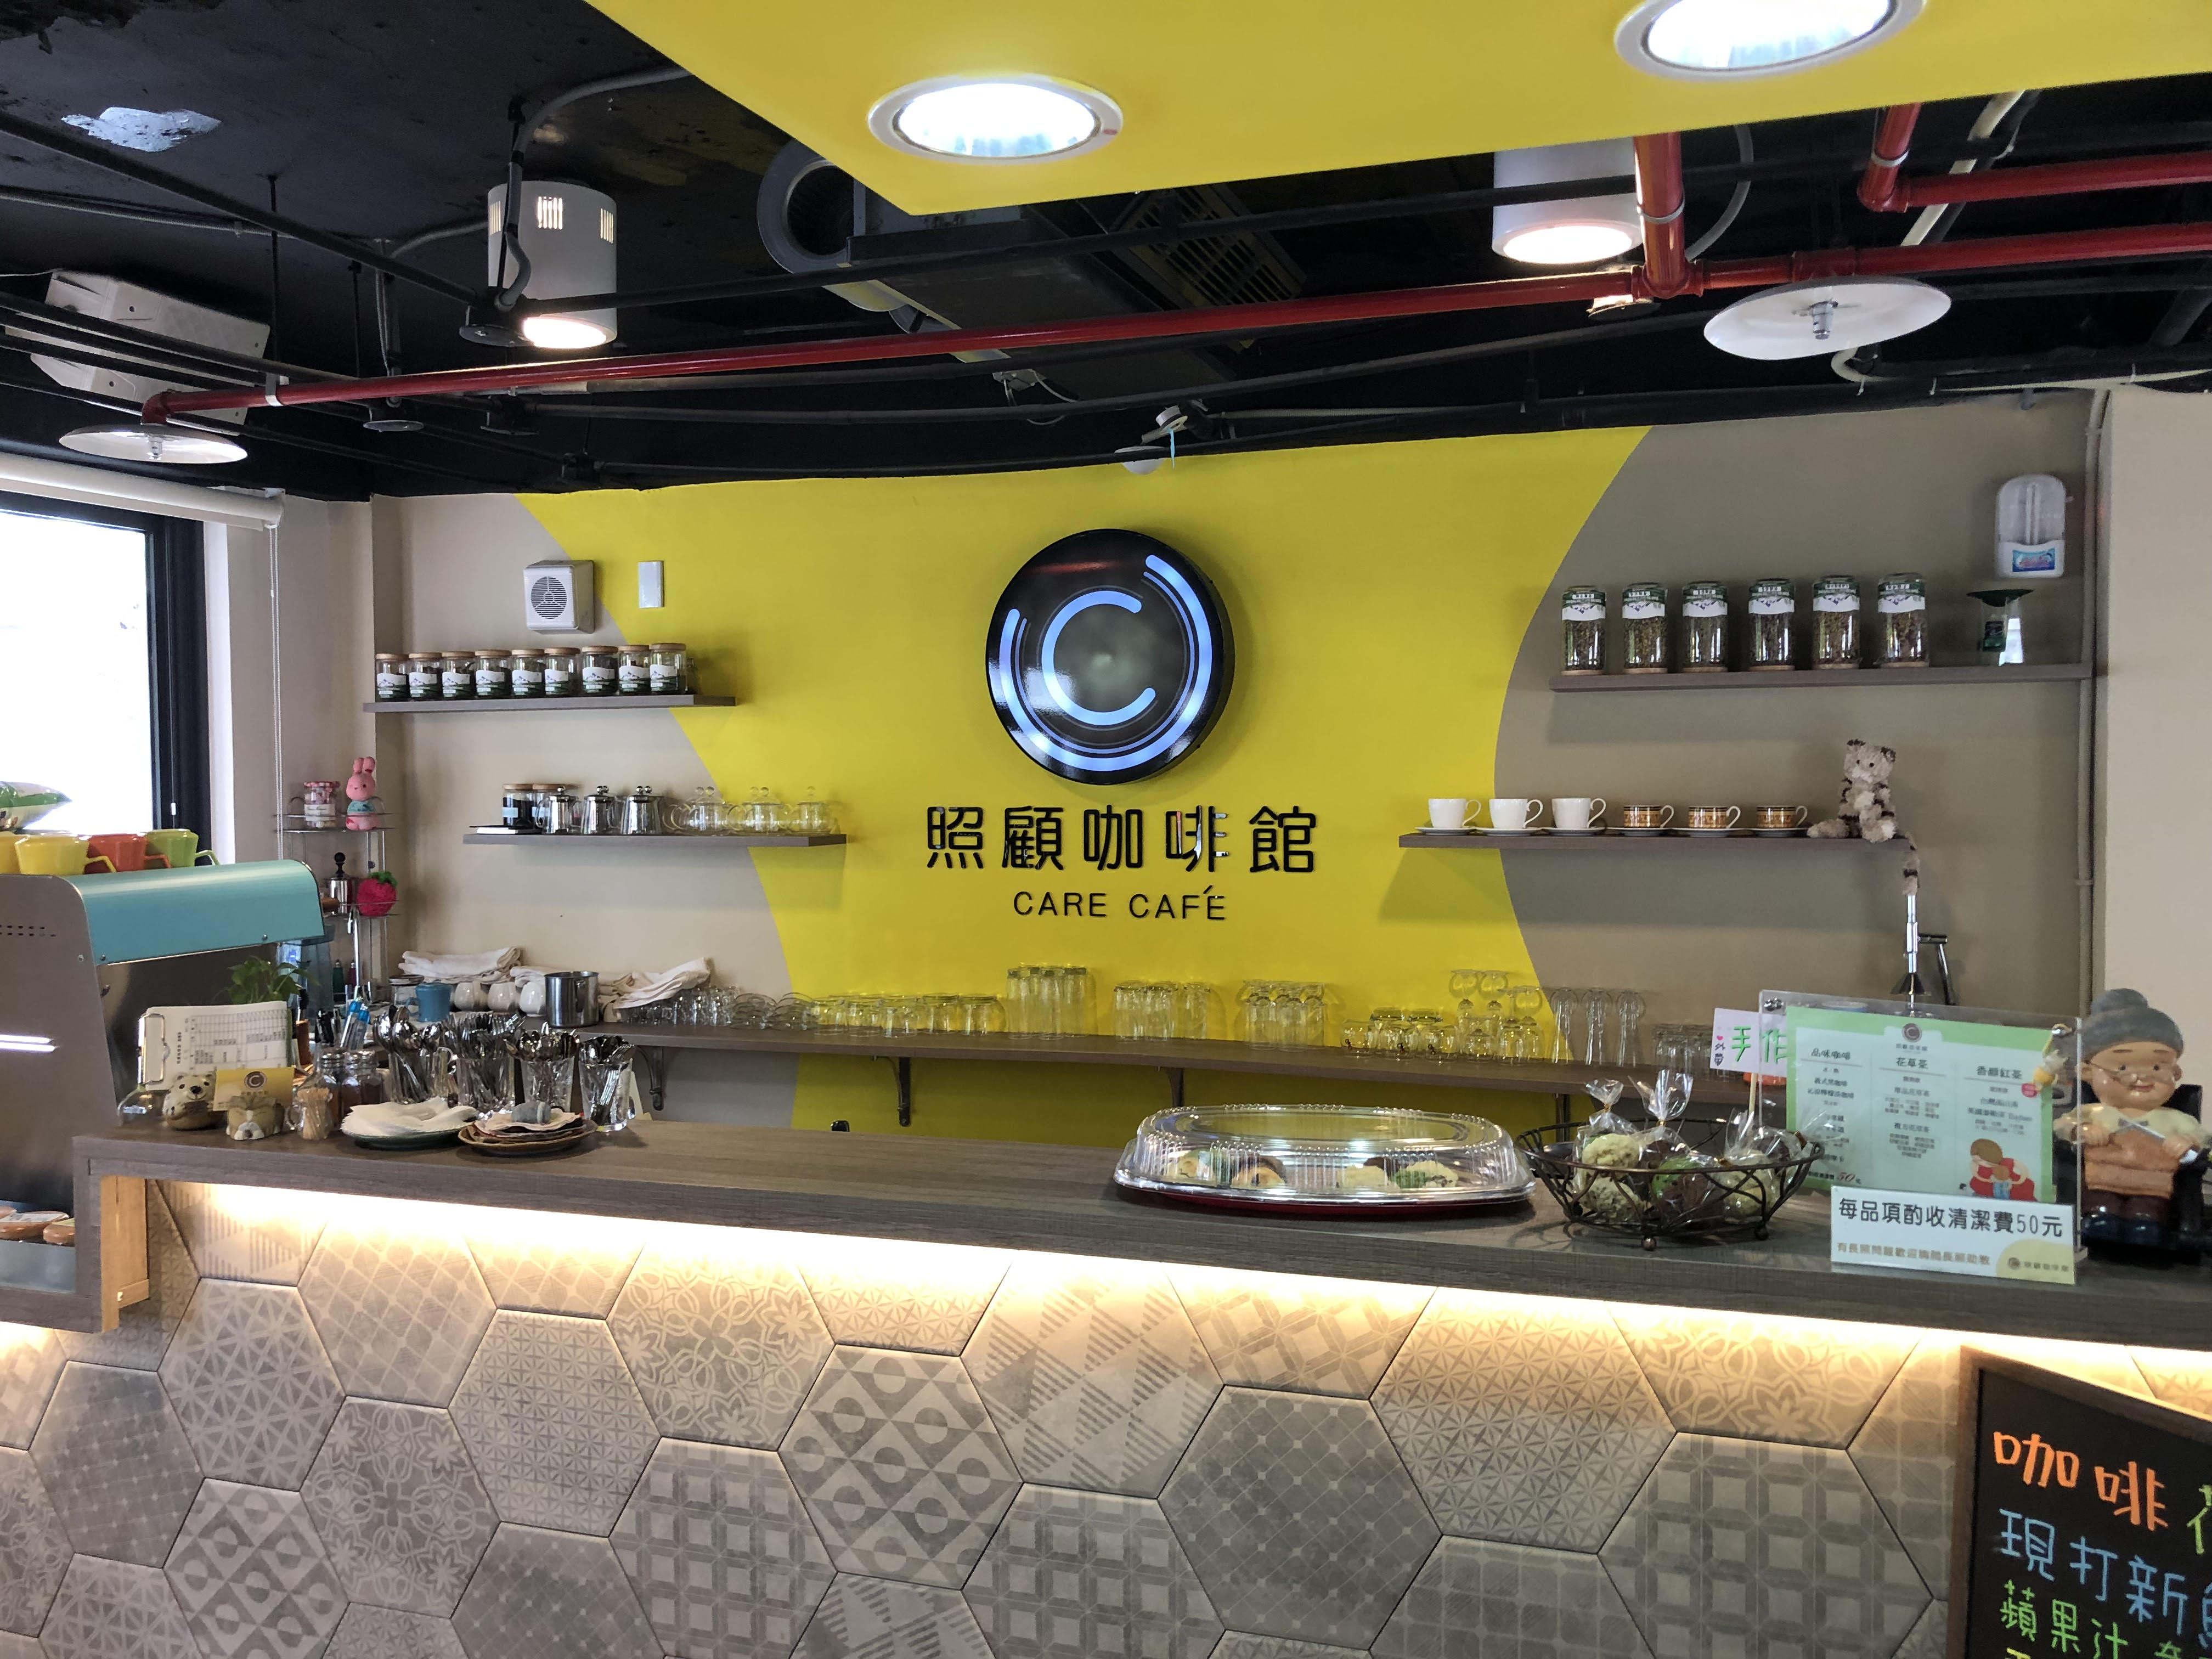 NEW CENTER with CARE CAFE